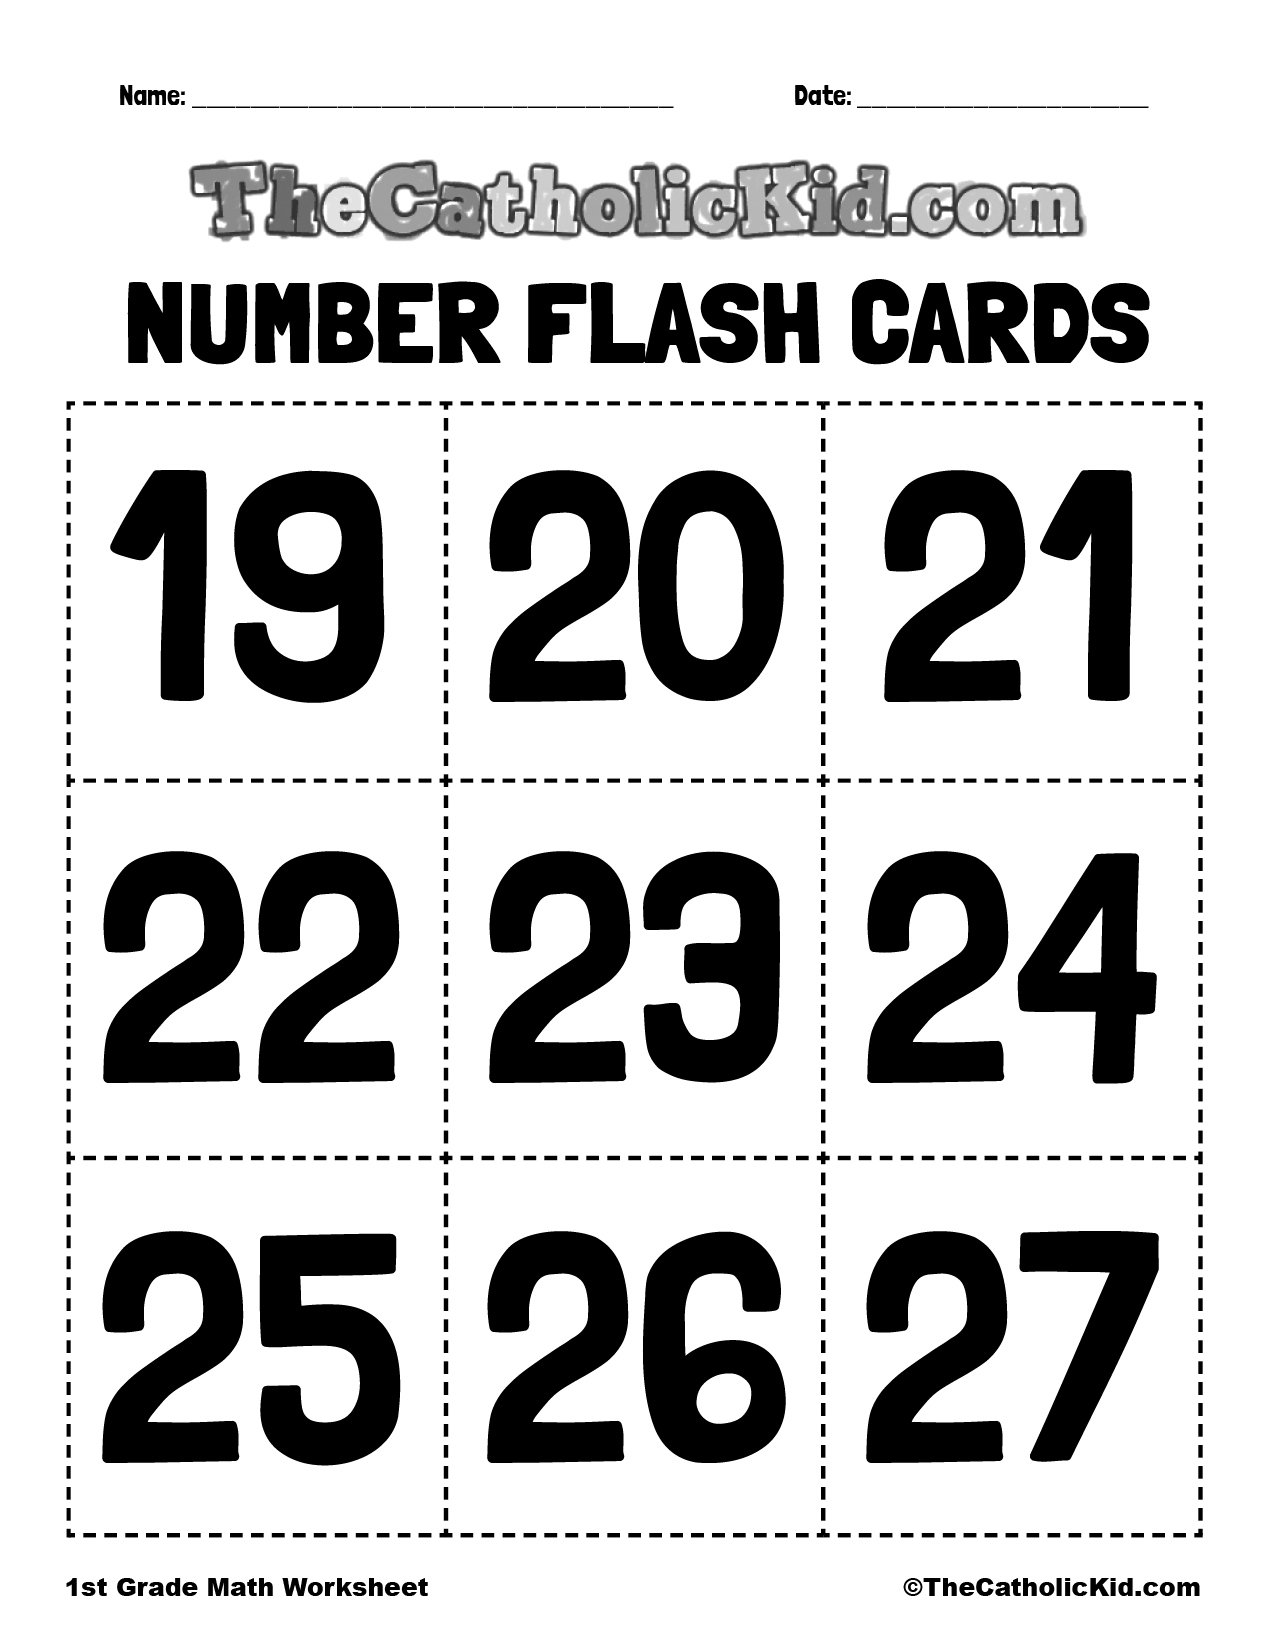 Number Flash Cards 19-27 - 1st Grade Math Worksheet Catholic